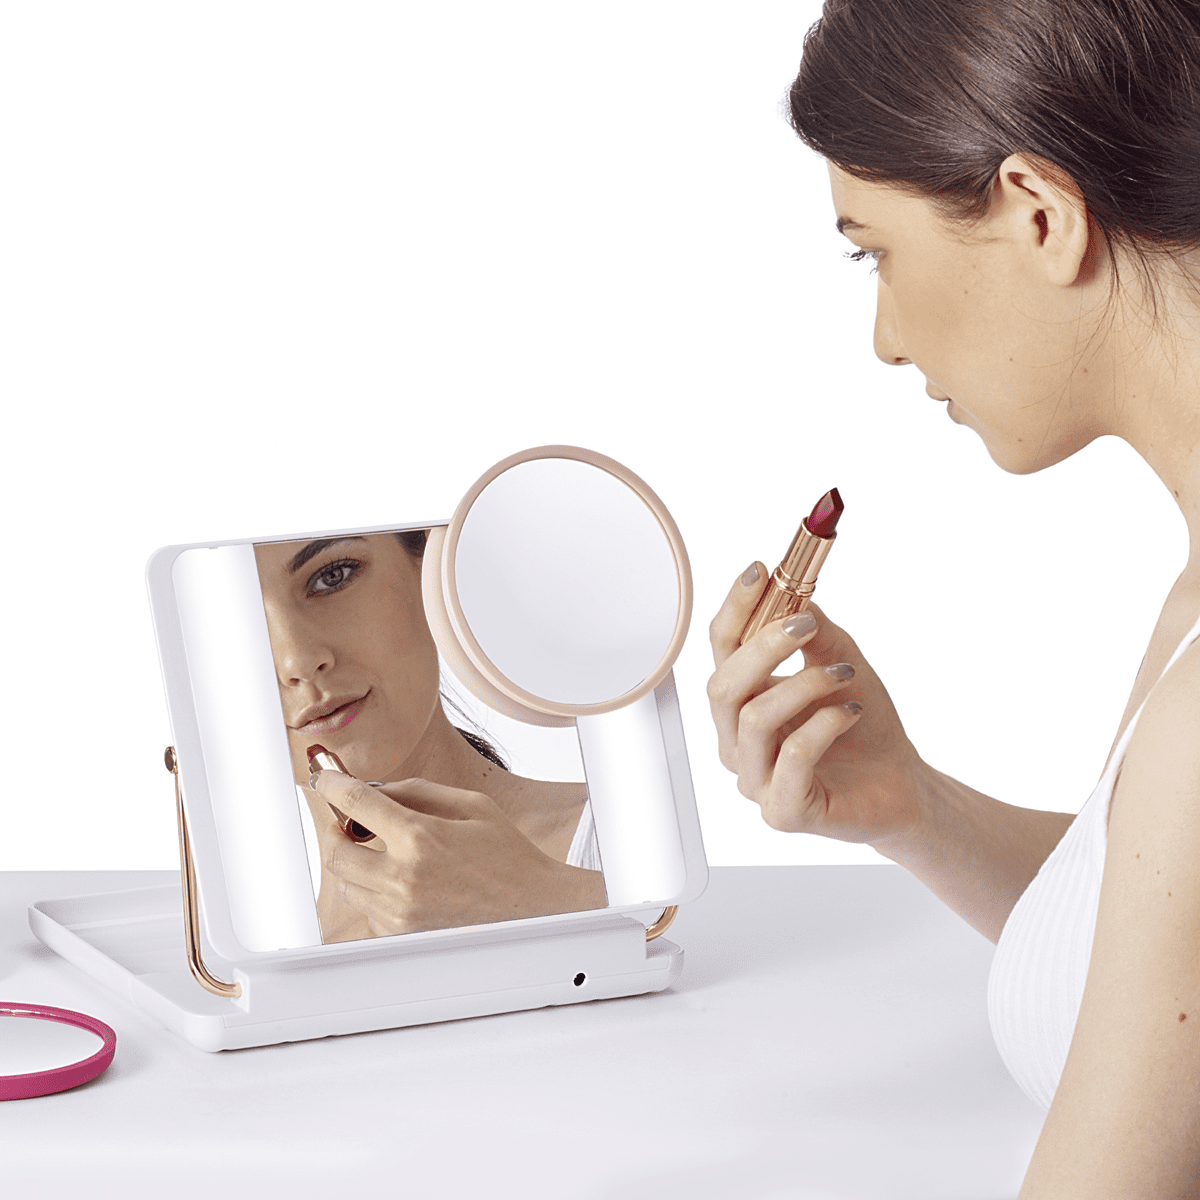 Joi Spotlite Hd Professional Makeup Mirror For Perfect